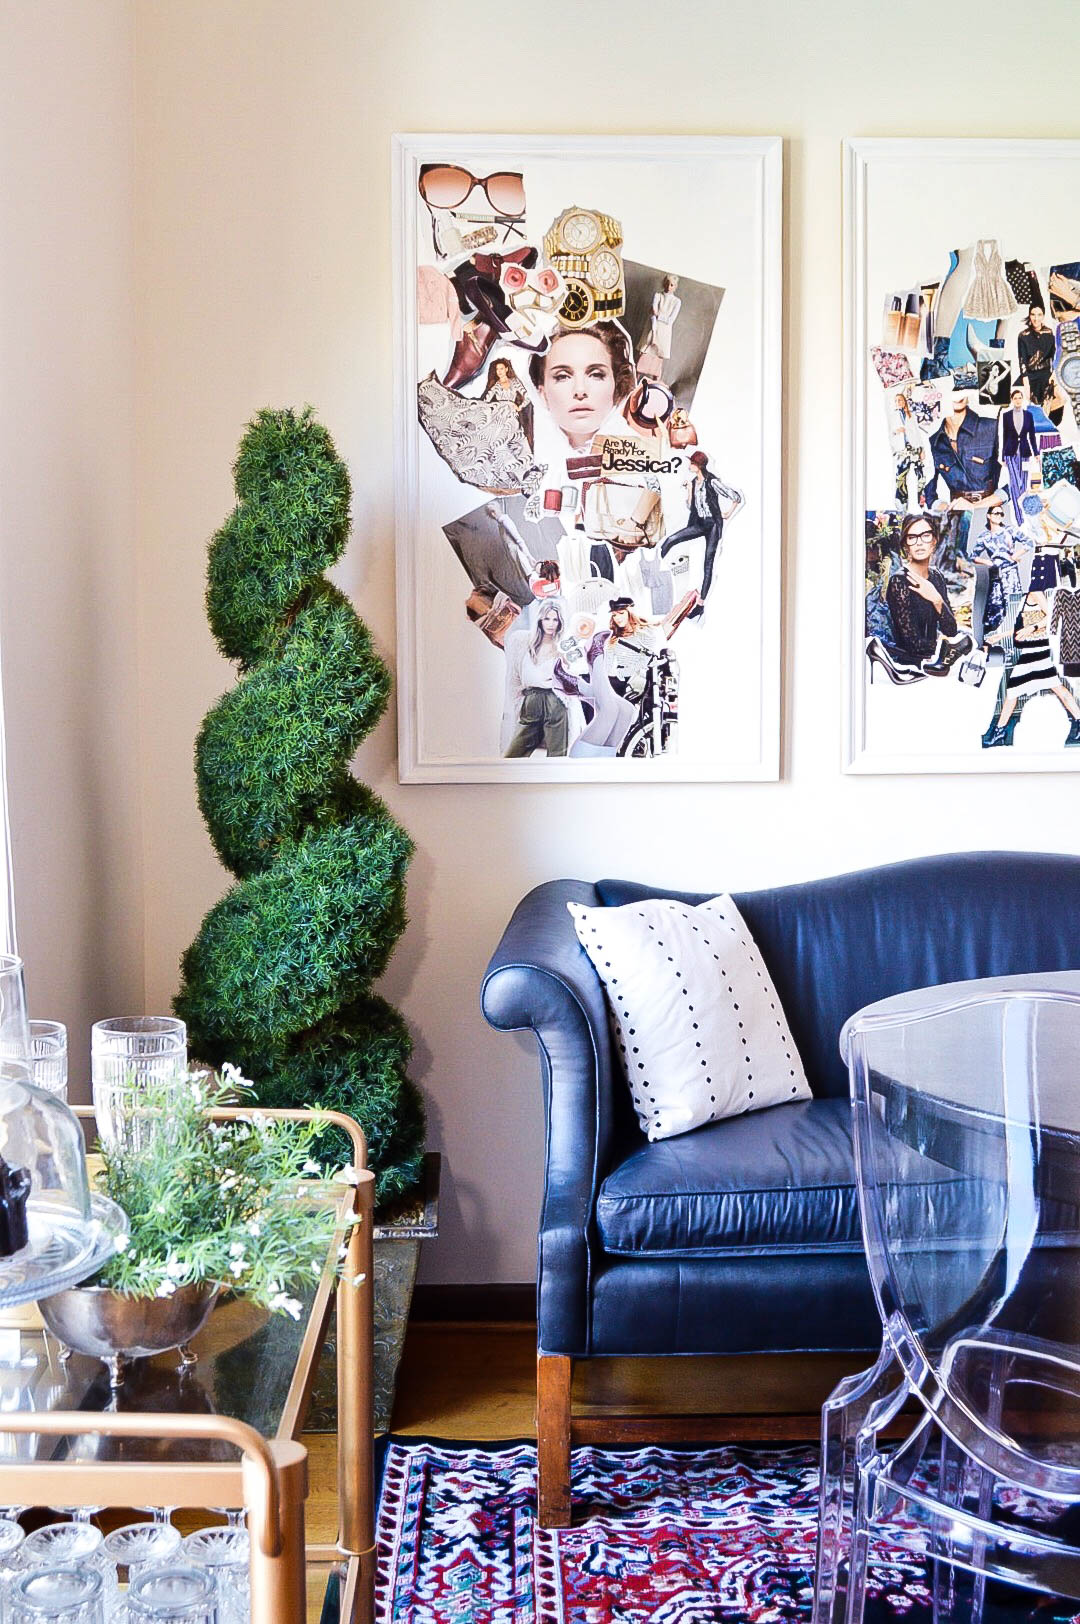 Dining Room makeover   Vintage eclectic dining room   Edgy dining room   magazine collage art   Black camelback couch   Black dining room   Eclectic dining room   Rental living   Rental home decor   Rental dining room